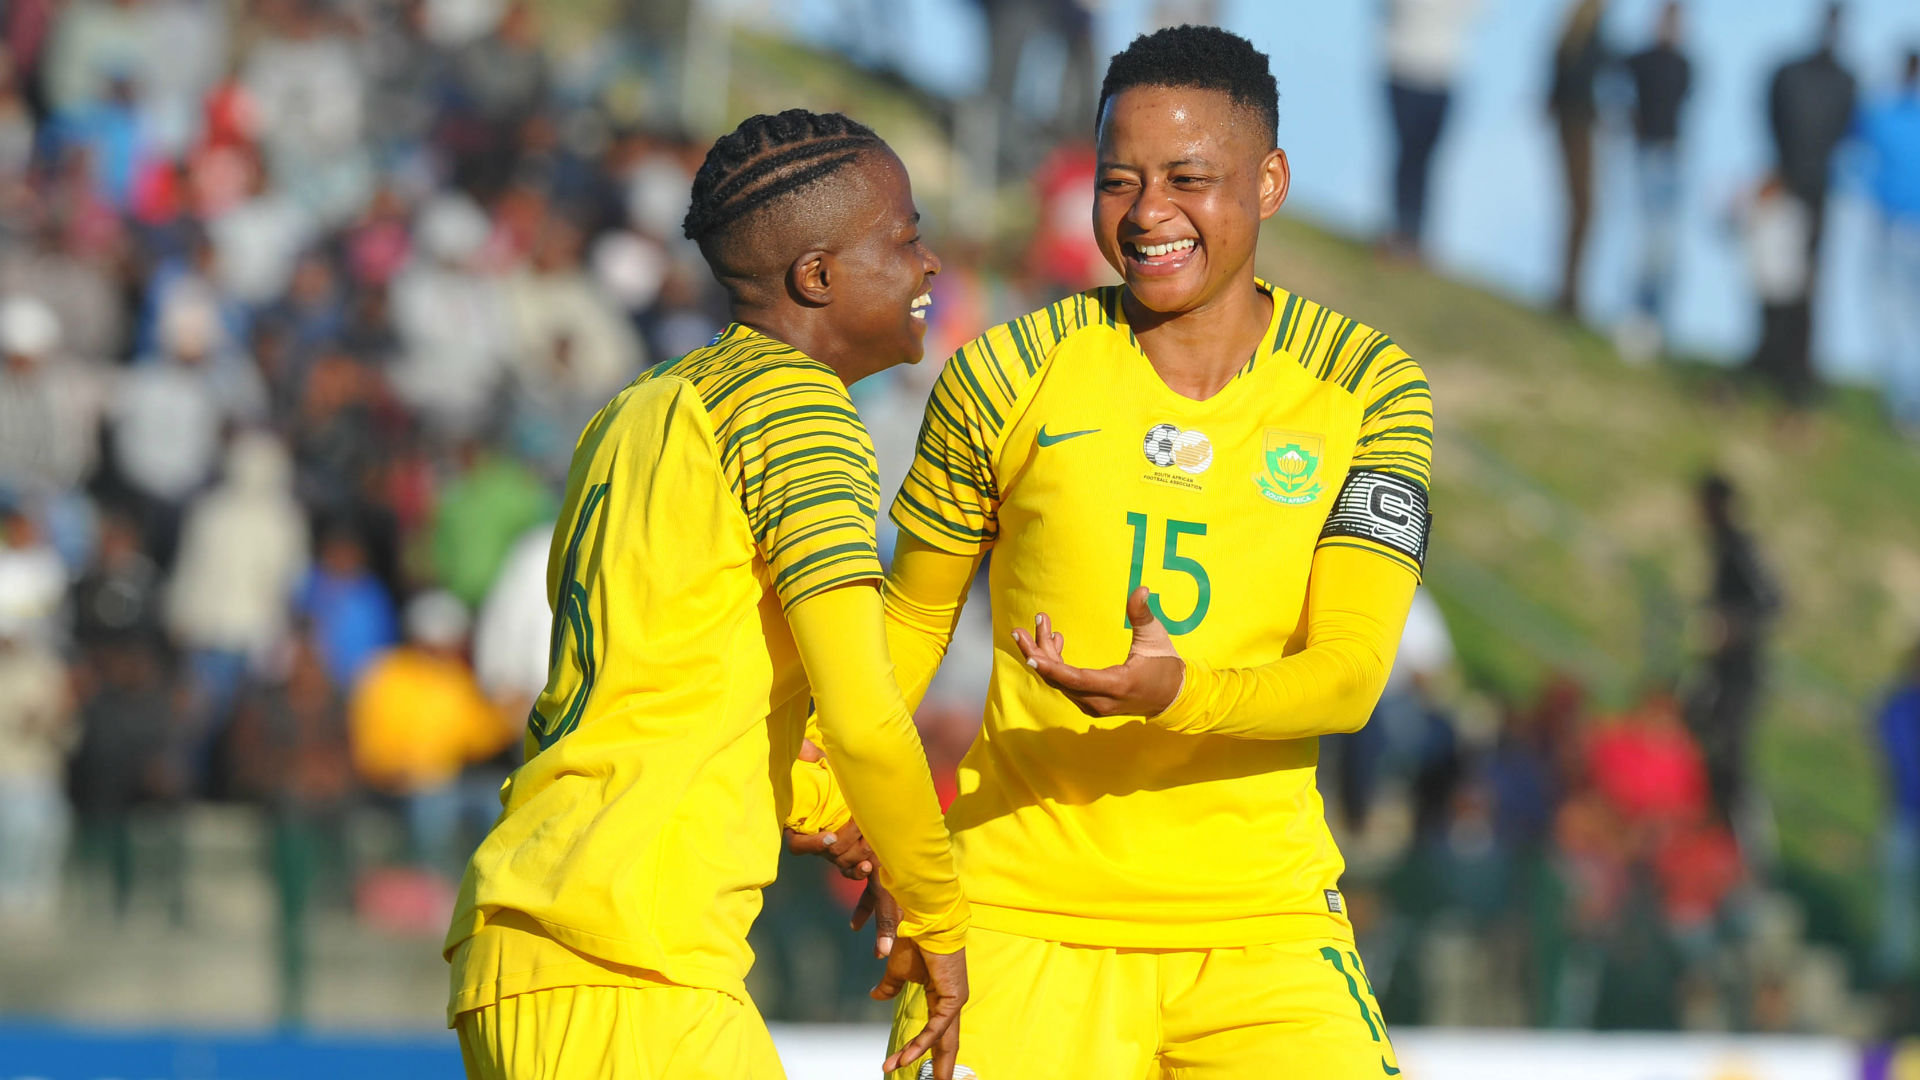 Banyana applied World Cup lessons to retain Cosafa Women's Cup - Refiloe Jane